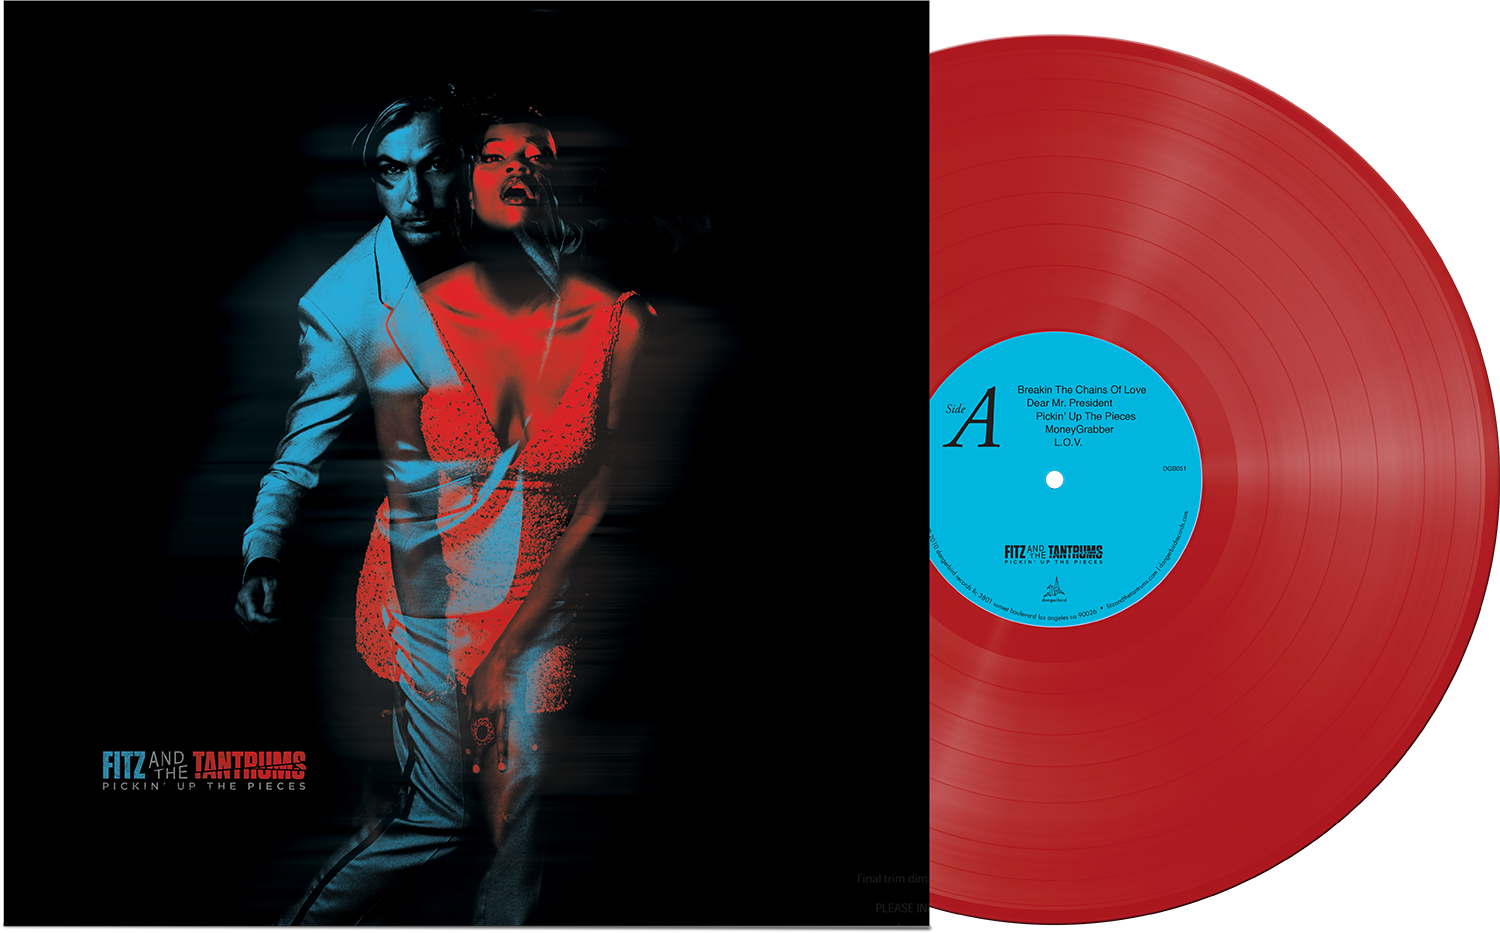 Fitz & The Tantrums - Pickin' Up The Pieces - Red LP